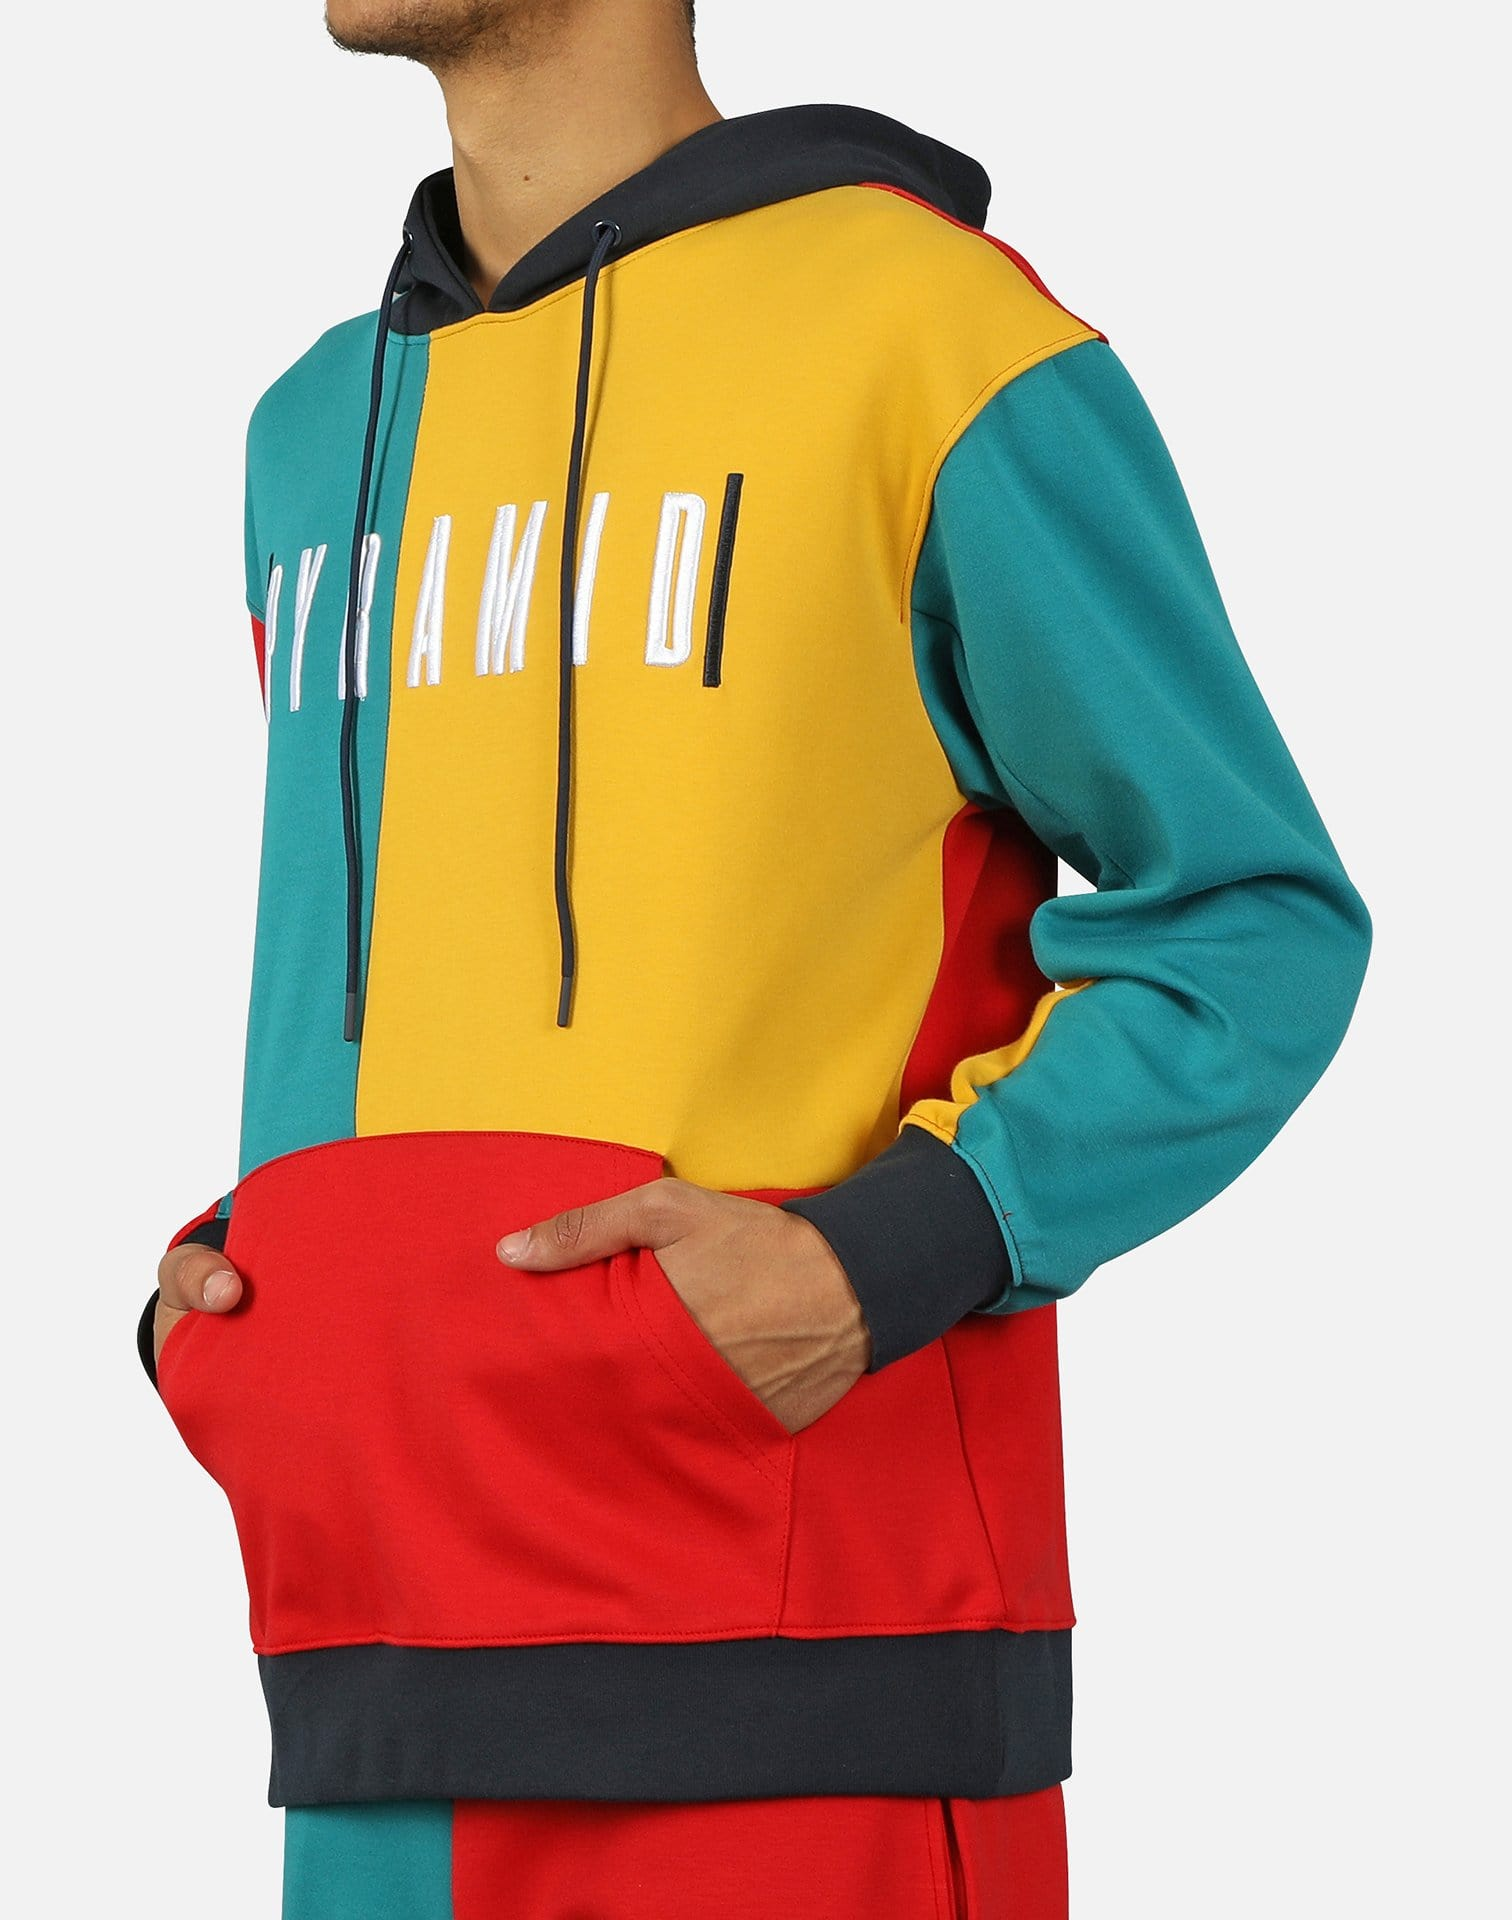 '90S COLORBLOCKED FLEECE HOODIE